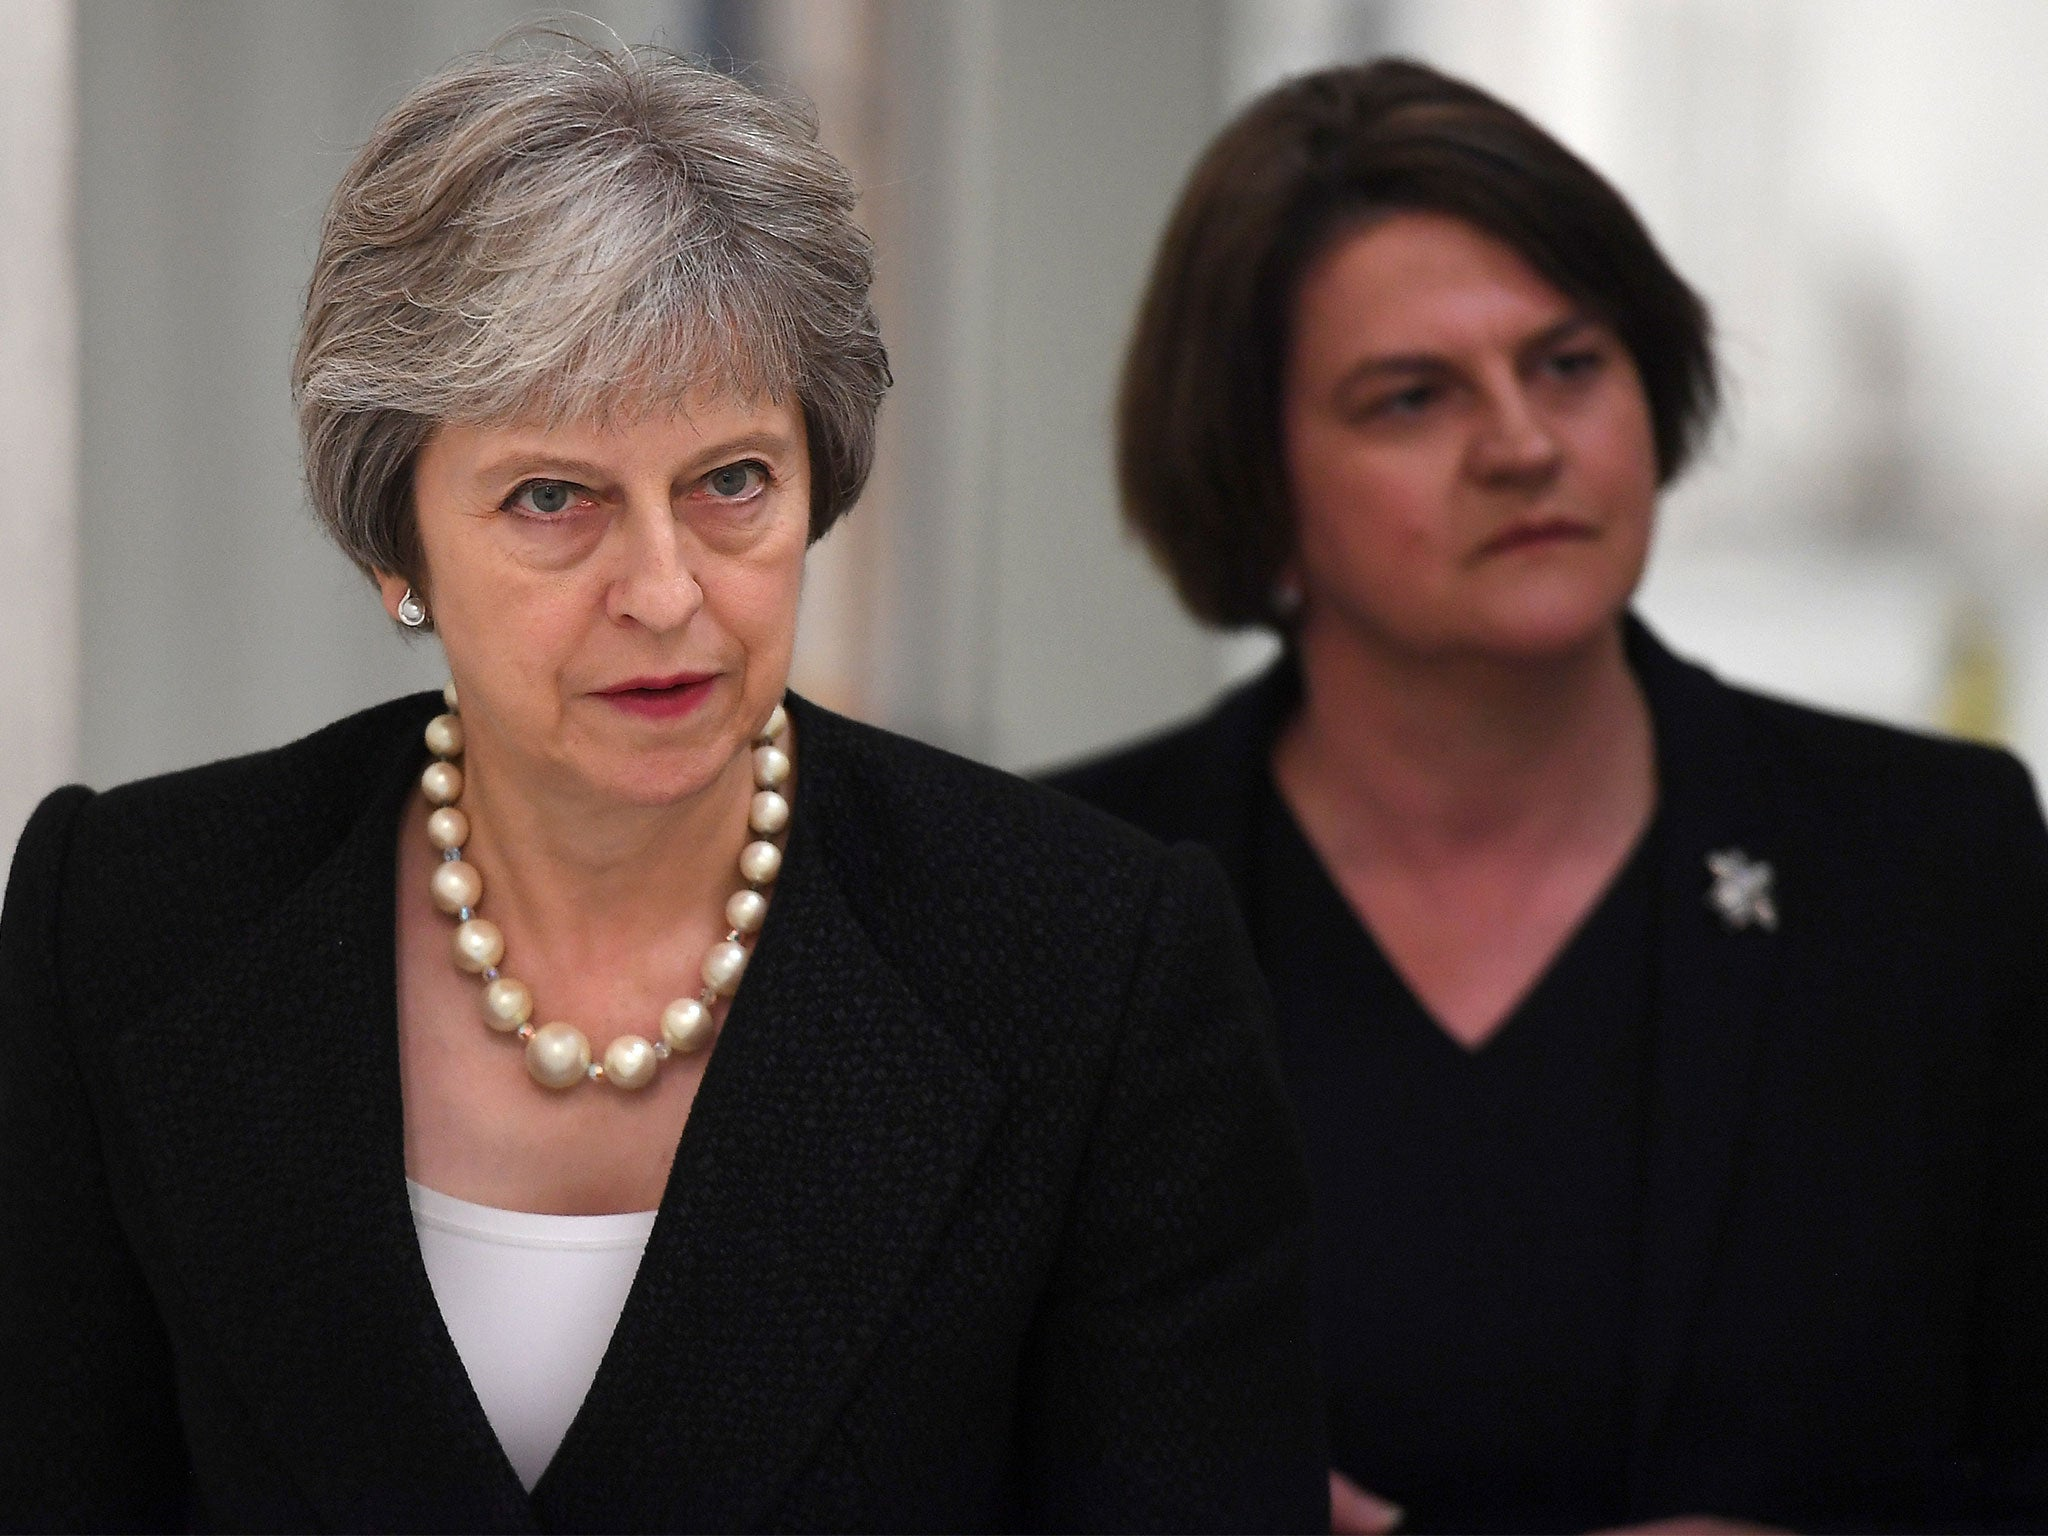 Brexit: May warns DUP of customs border in Irish Sea in case of no deal, leaked letter suggests